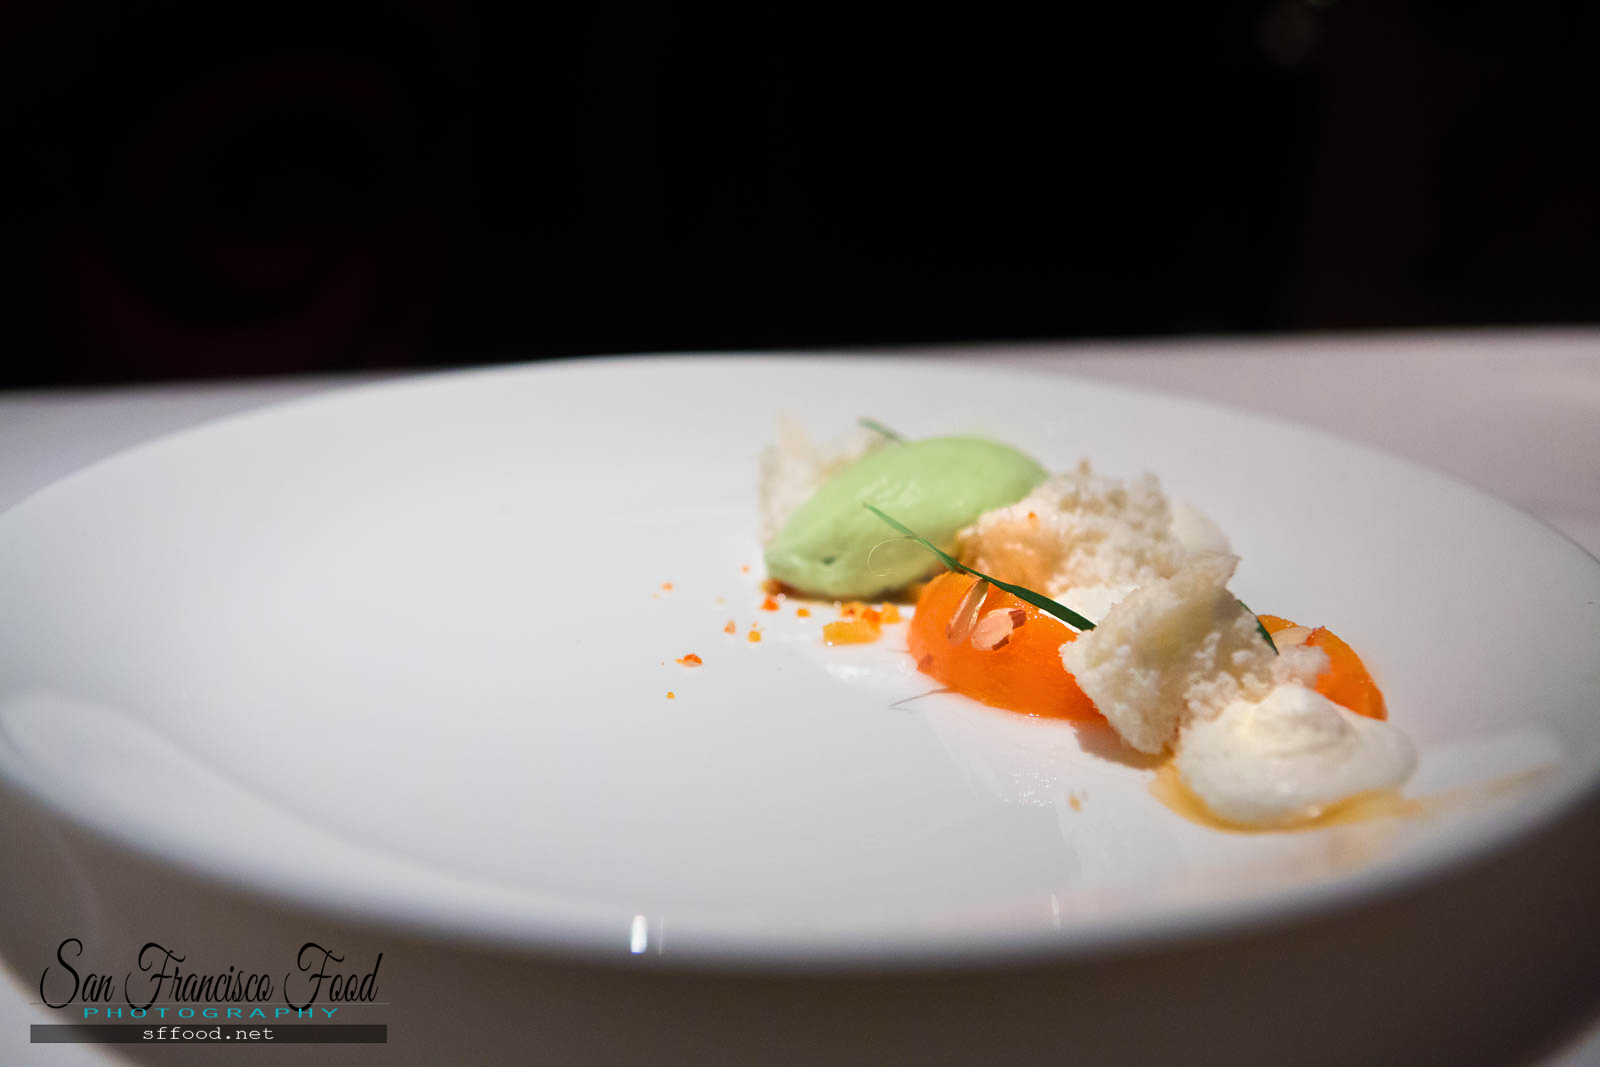 Farallon San Francisco | SF Food Restaurant Review